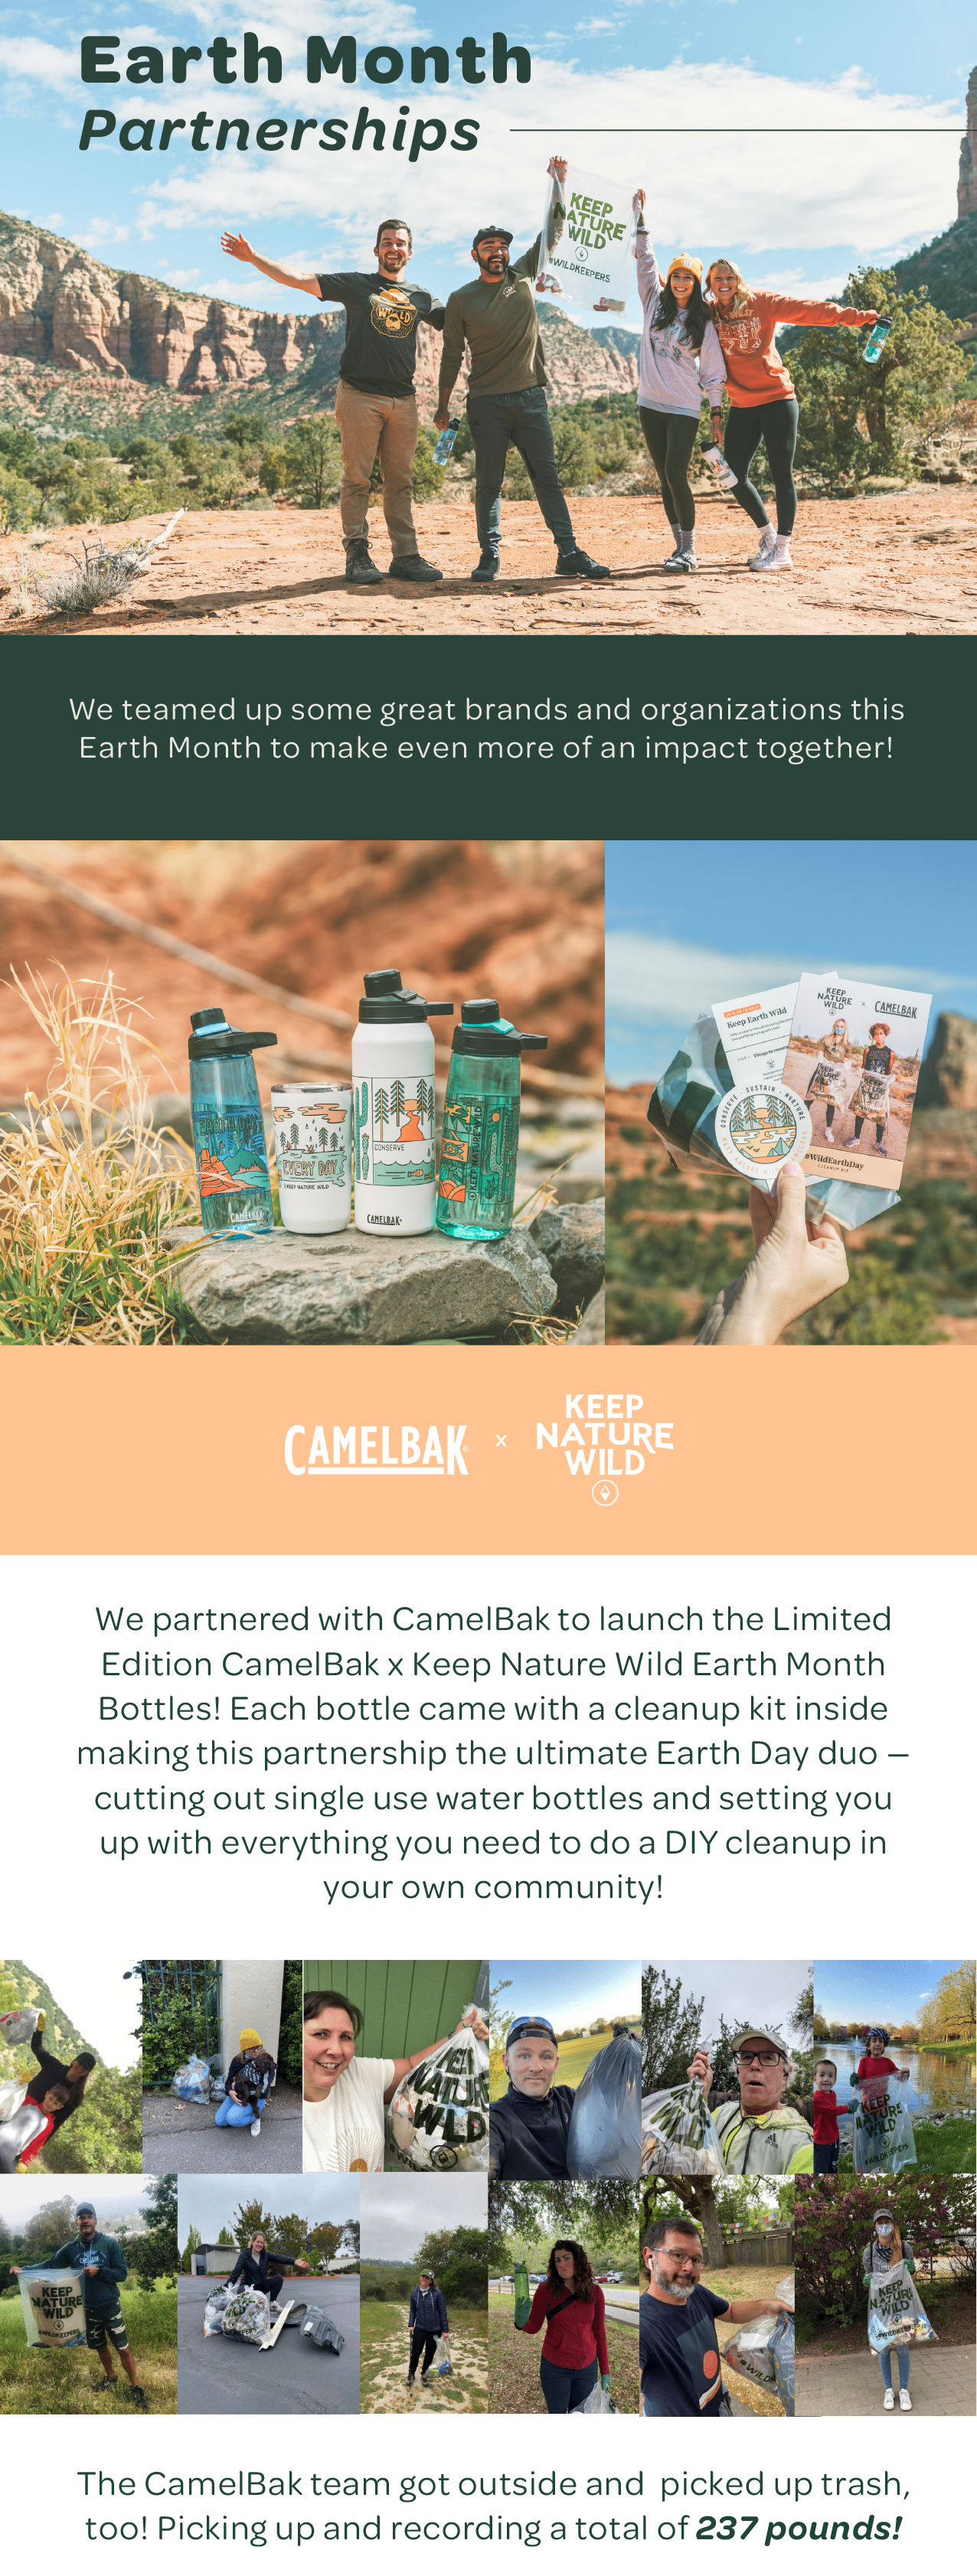 Earth Month Partnerships — We teamed up some great brands and organizations this Earth Month to make even more of an impact together! CamelBak x Keep Nature Wild. We partnered with CamelBak to launch the Limited Edition CamelBak x Keep Nature Wild Earth Month Bottles! Each bottle came with a cleanup kit inside making this partnership the ultimate Earth Day duo — cutting out single use water bottles and setting you up with everything you need to do a DIY cleanup in your own community! The CamelBak team got outside and picked up trash, too! Picking up and recording a total of 237 pounds!